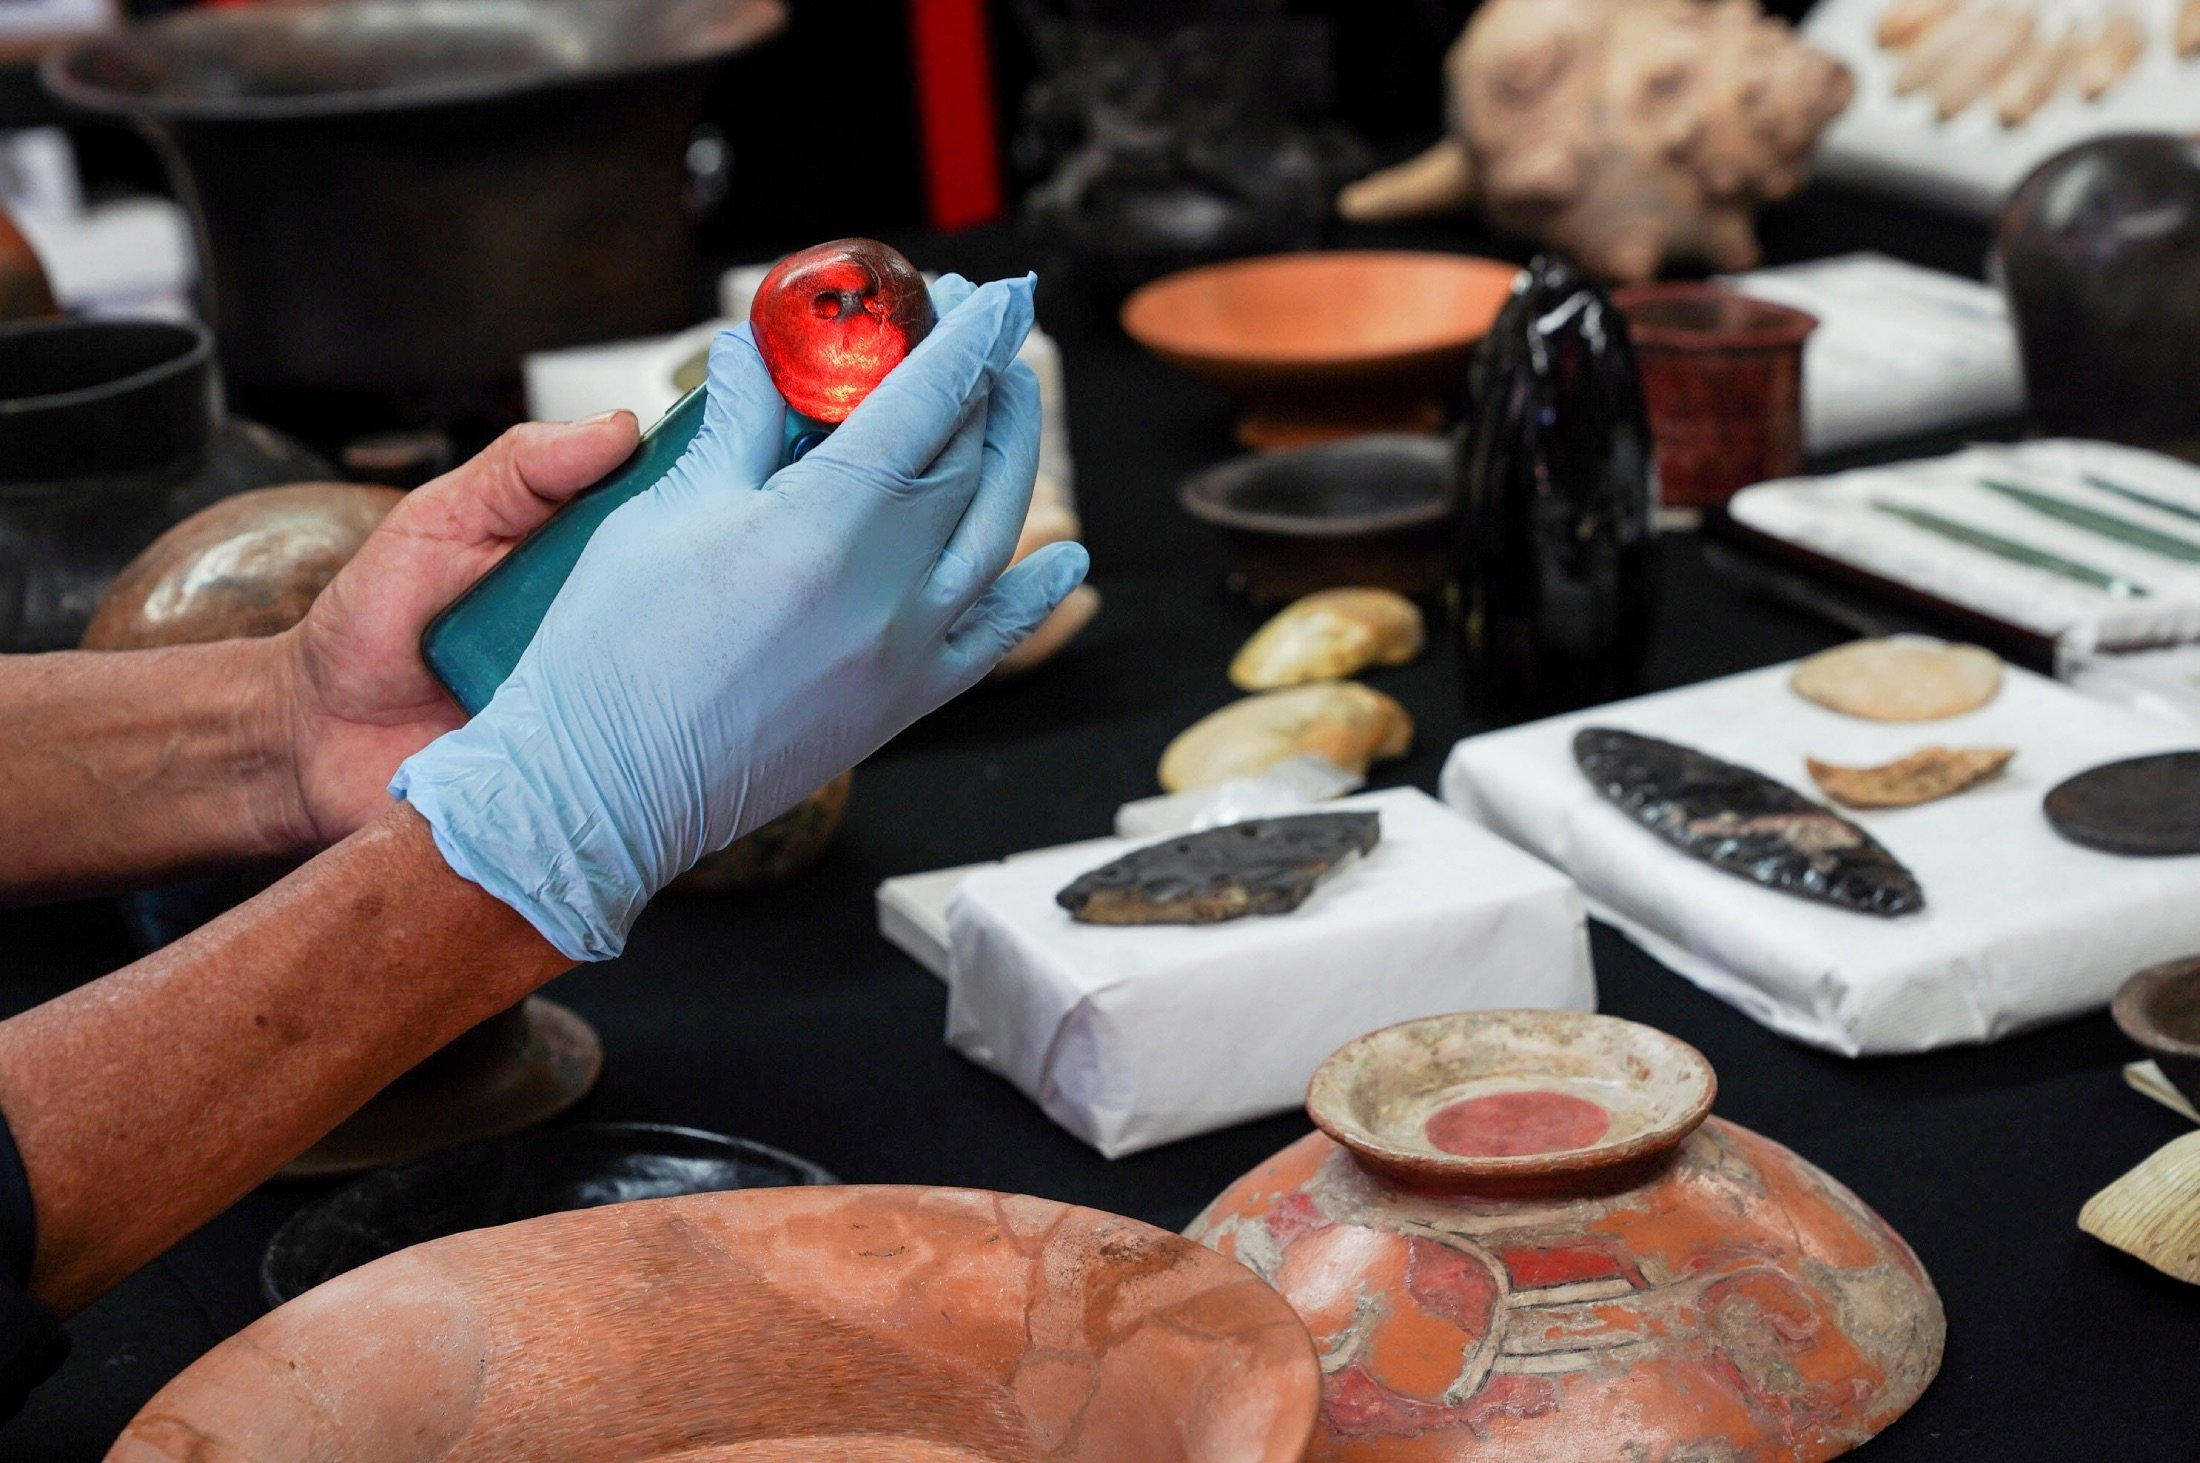 Archaeologist Sergio Gomez holds a carved amber sphere found inside a 2,000-year-old tunnel built under the ornate Feathered Serpent Pyramid, in the ruins of Teotihuacan, in San Juan Teotihuacan, Mexico, Aug. 12, 2021. (Reuters Photo)